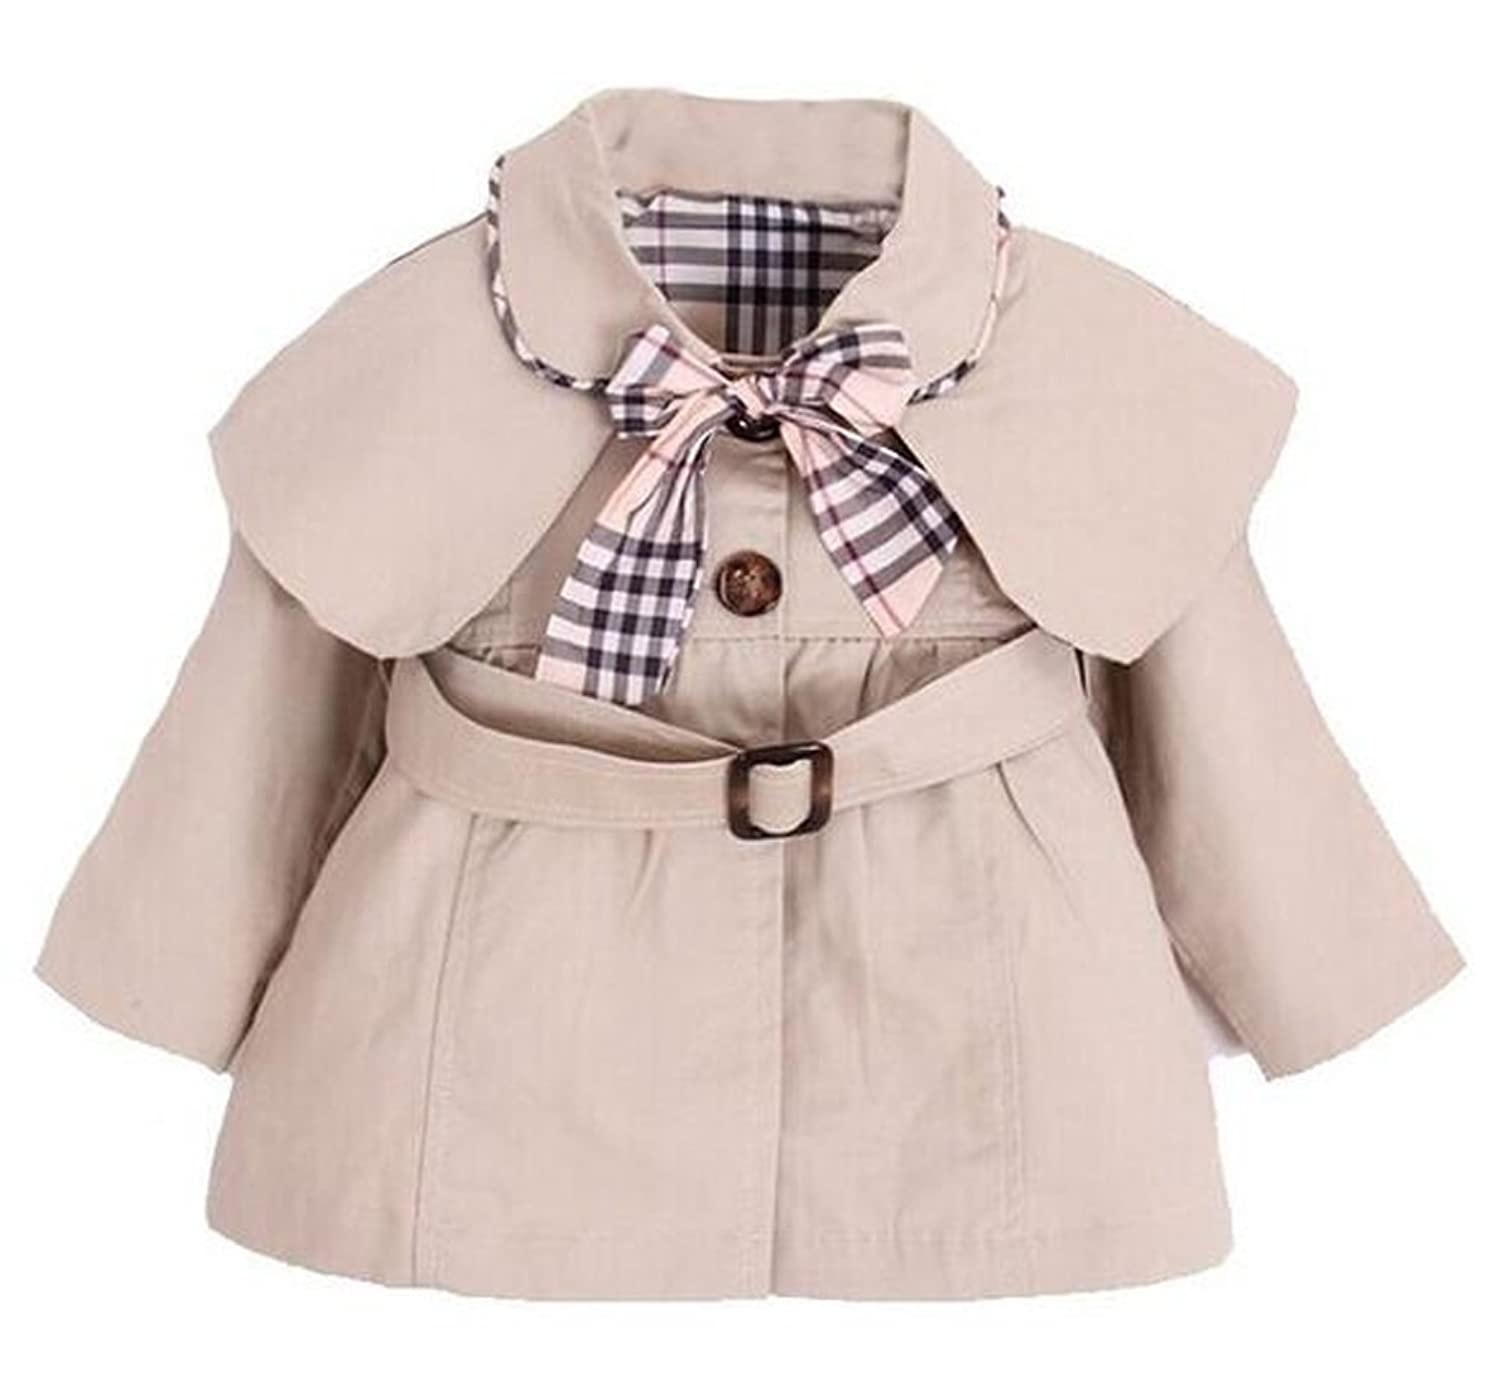 Arrowhunt Baby Girl s Princess Bowknot Cotton Trench Coat with Belt